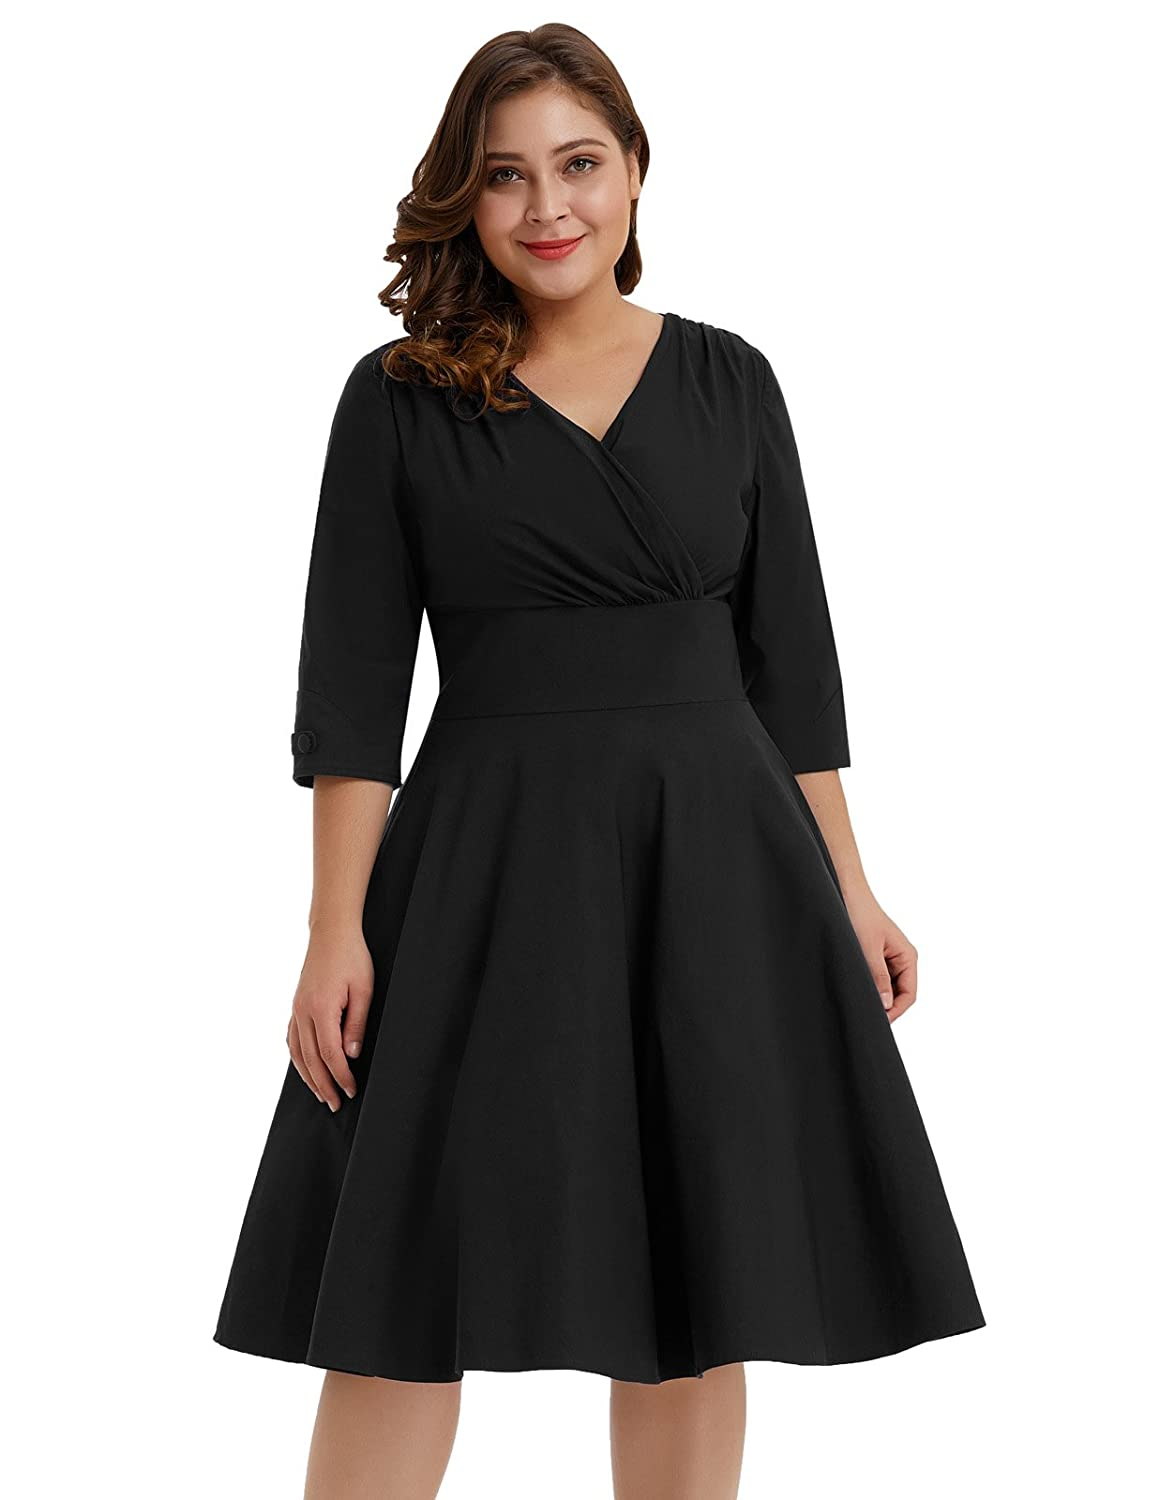 1950s Plus Size Dresses, Swing Dresses Hanna Nikole Womens Vintage 1950s Style Sleeved Plus Size Swing Dress $34.99 AT vintagedancer.com